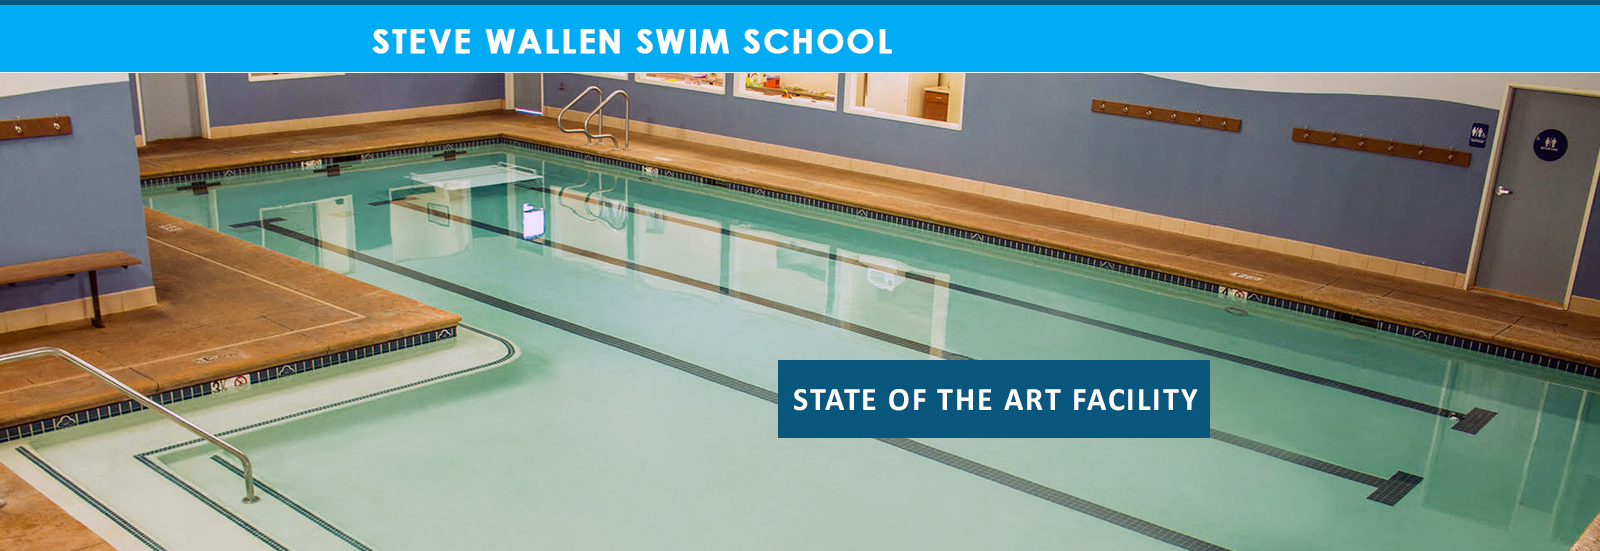 Wallen_Swim_Slide_02